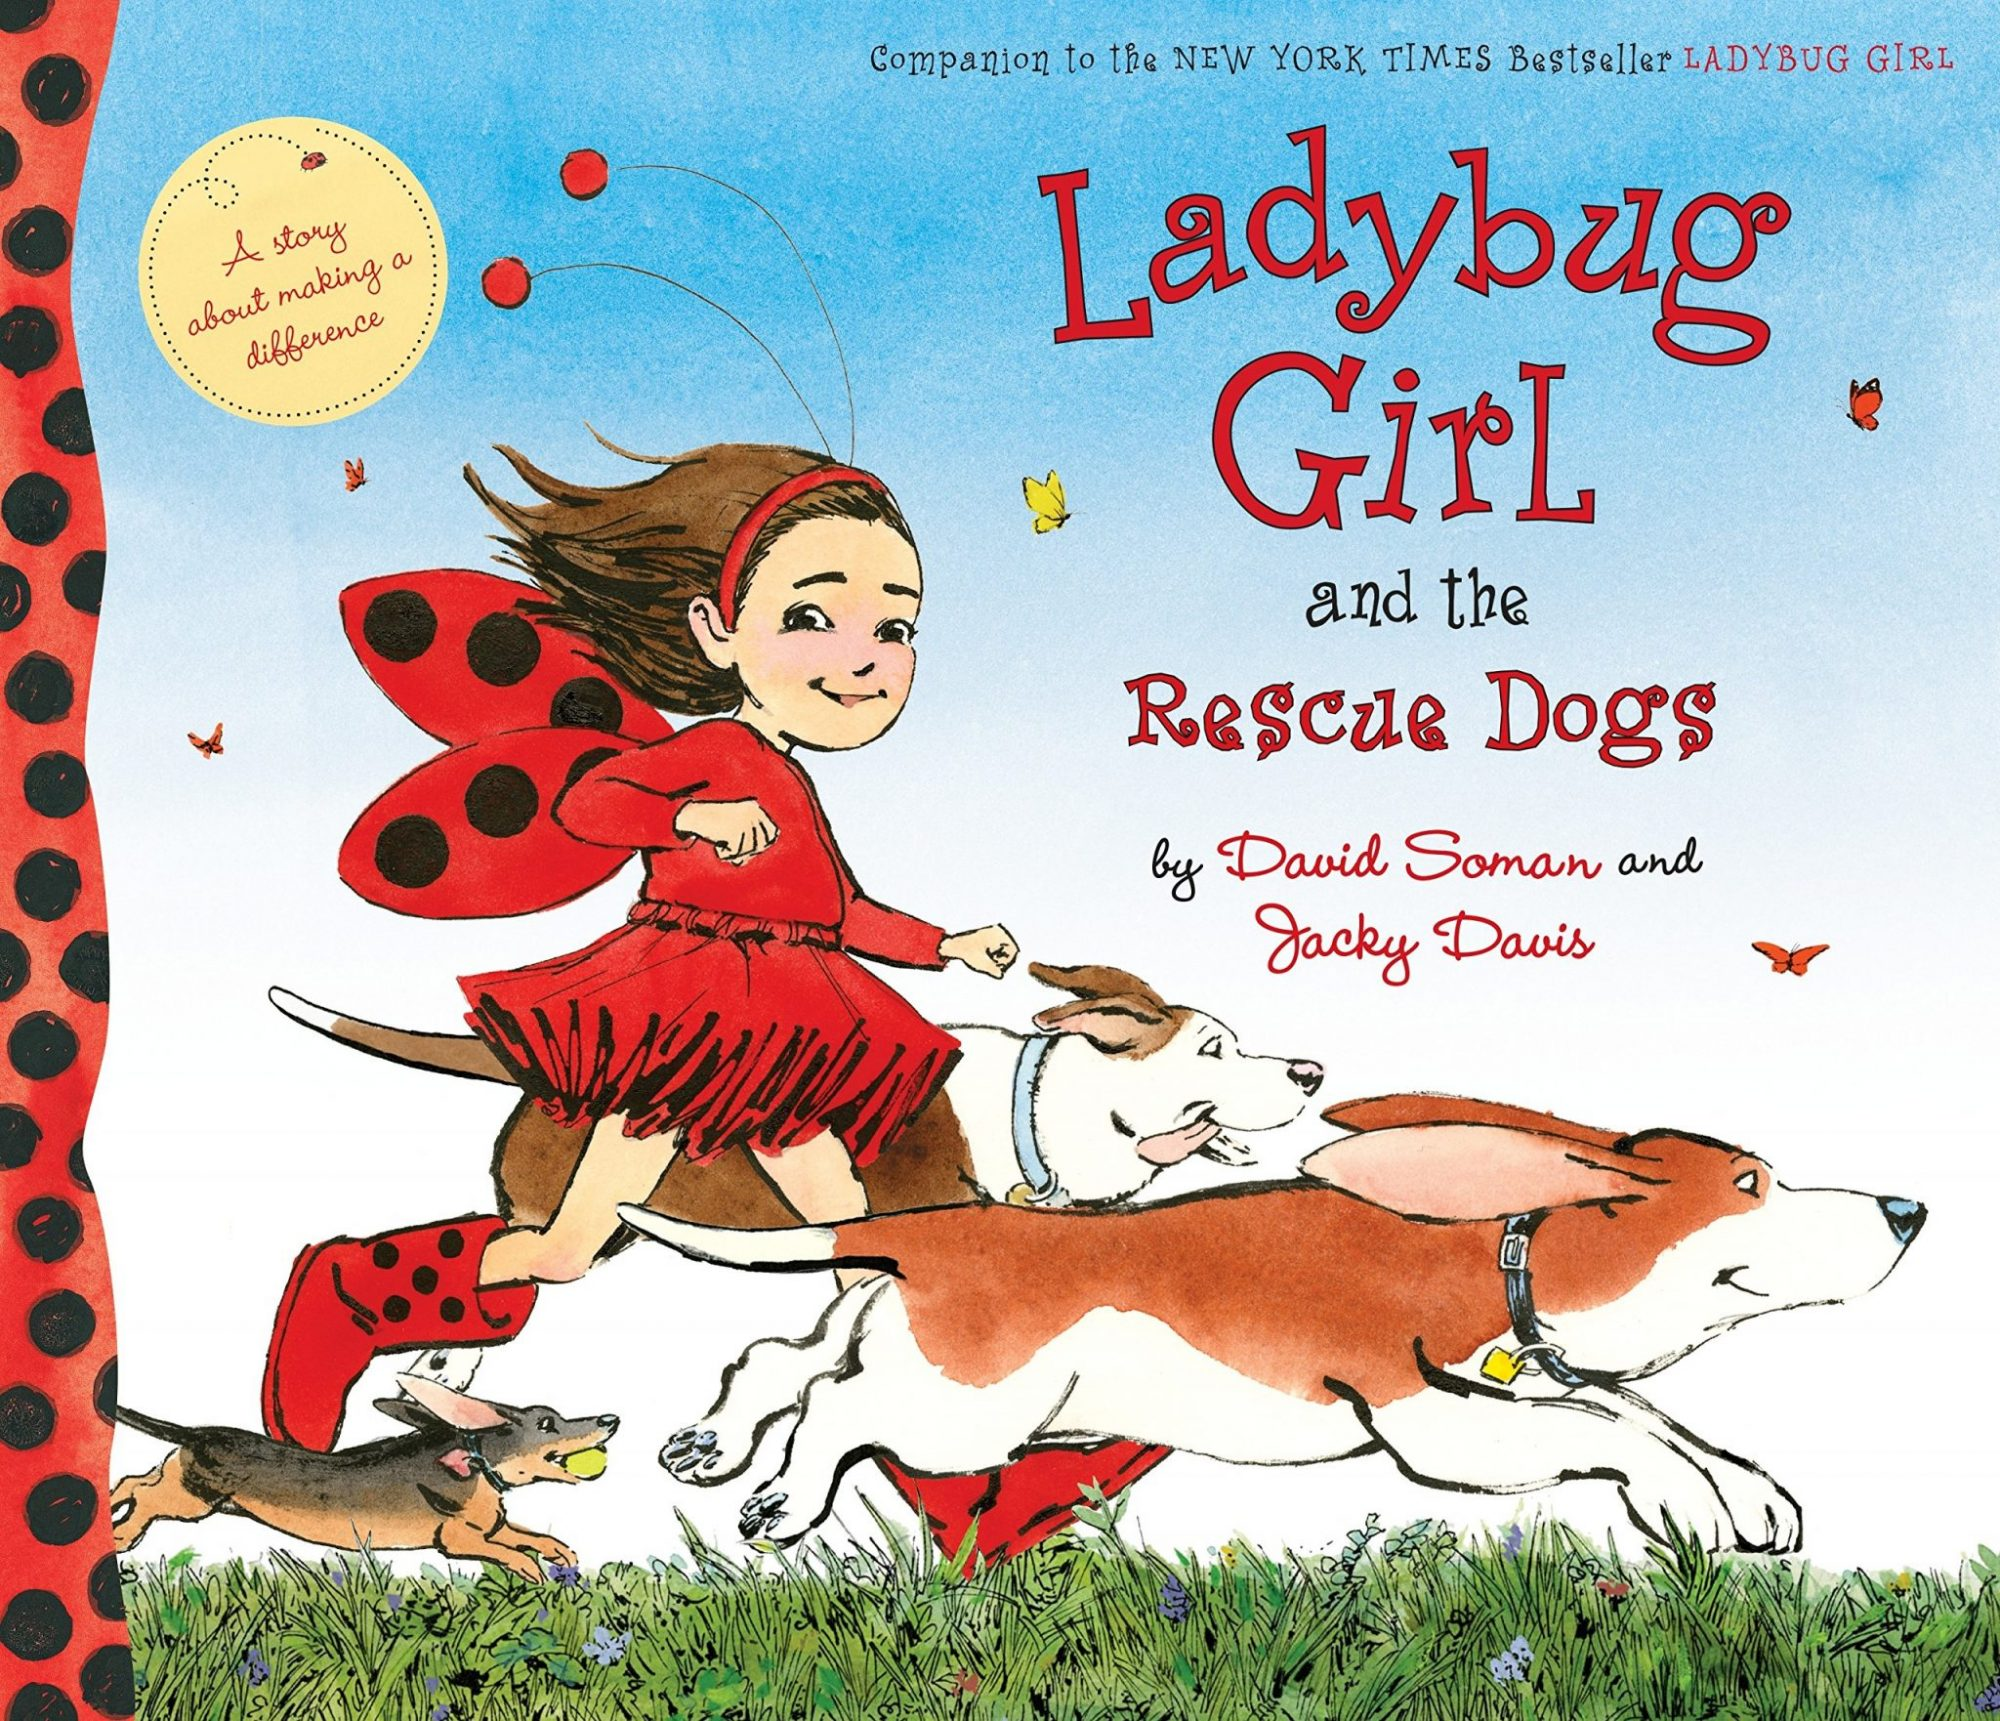 Ladybug Girl and the Rescue Dogs by David Soman and Jacky Davis